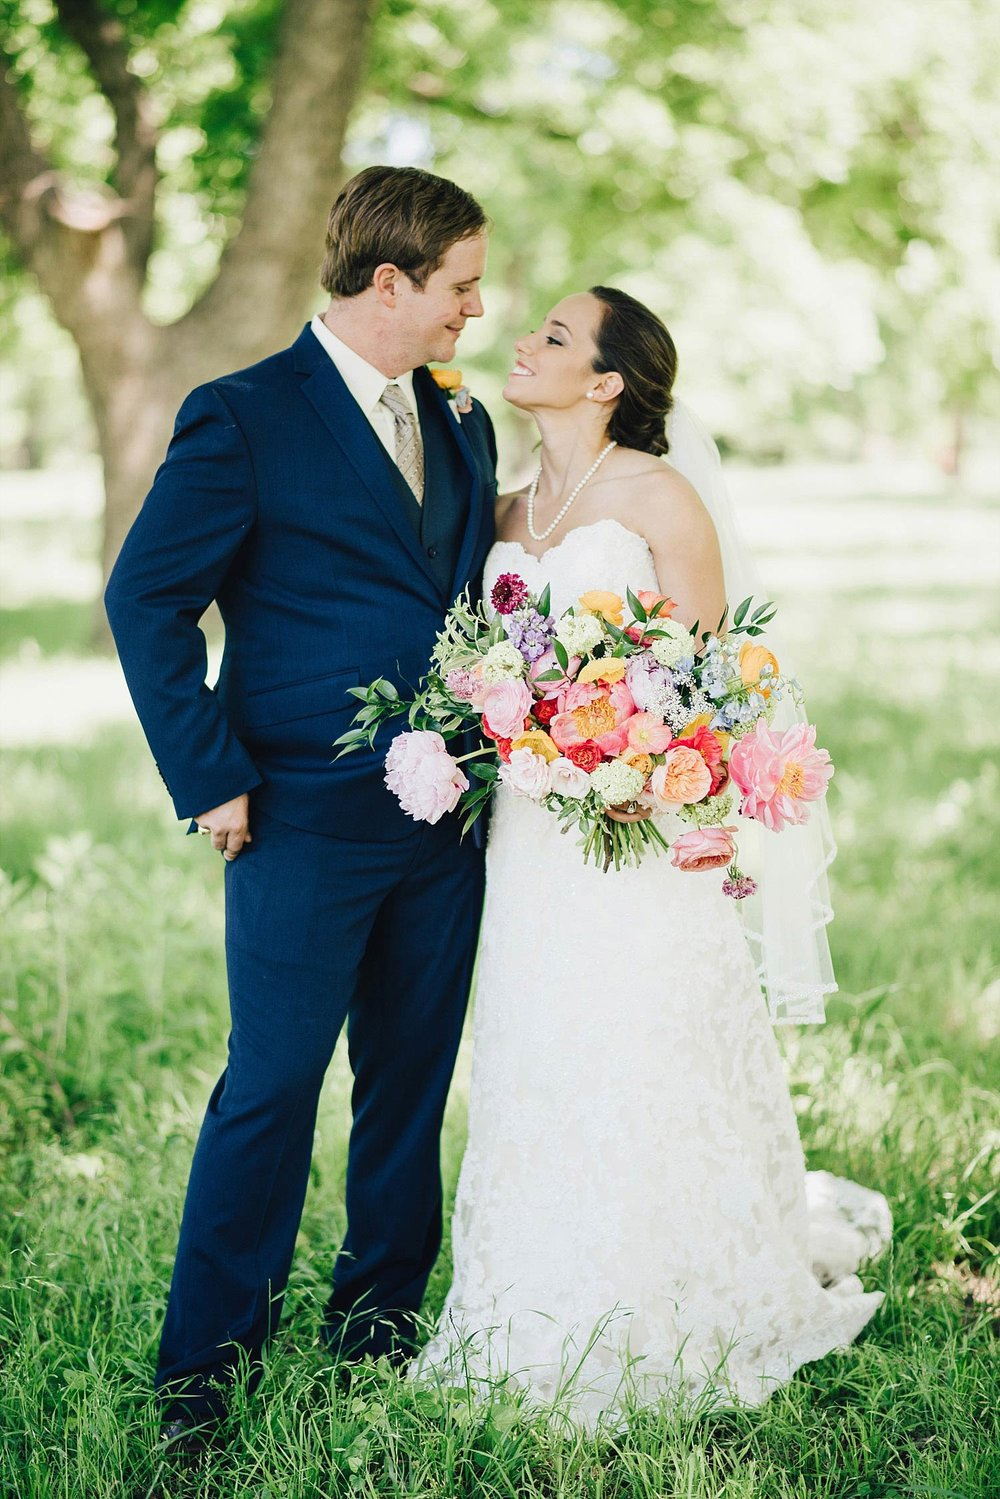 The Orchard Azle wedding bride with colorful bridal bouquet kissing groom